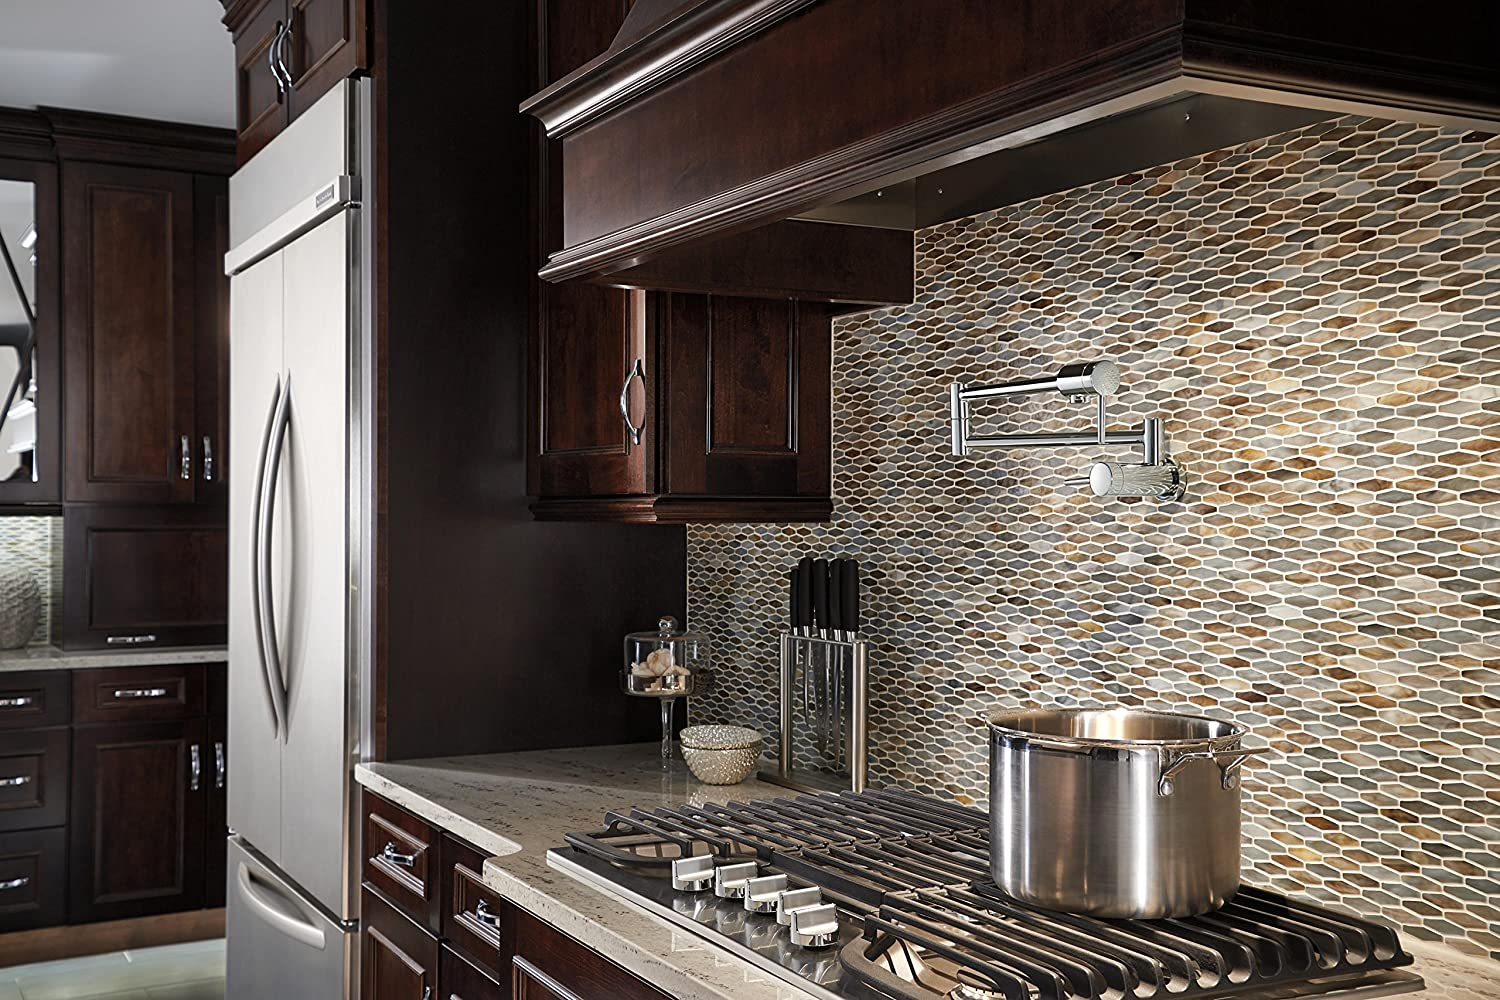 transitional mosaic filler other innovative hood oven faucet mixer remodeling cabinets black ideas tile style mode neutral with frosted stove glass pasta metro pot baroque kitchen backsplash colors